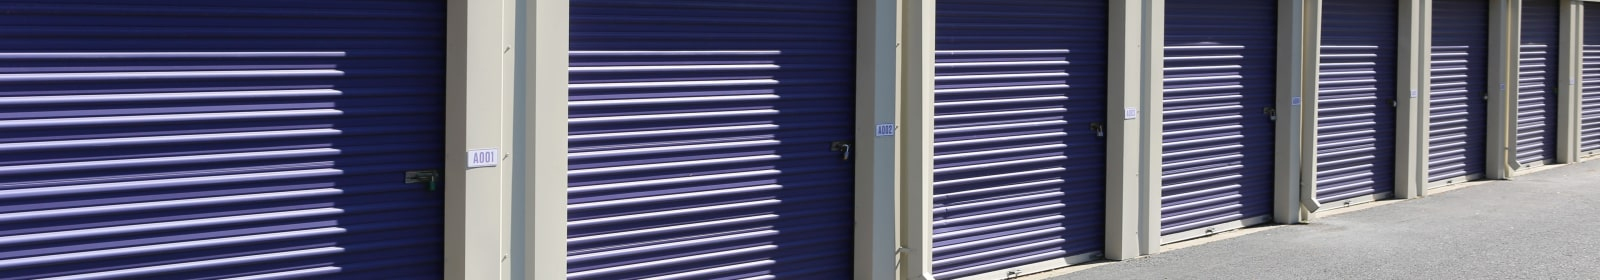 StoreSmart Self-Storage storage units in Fayetteville, North Carolina